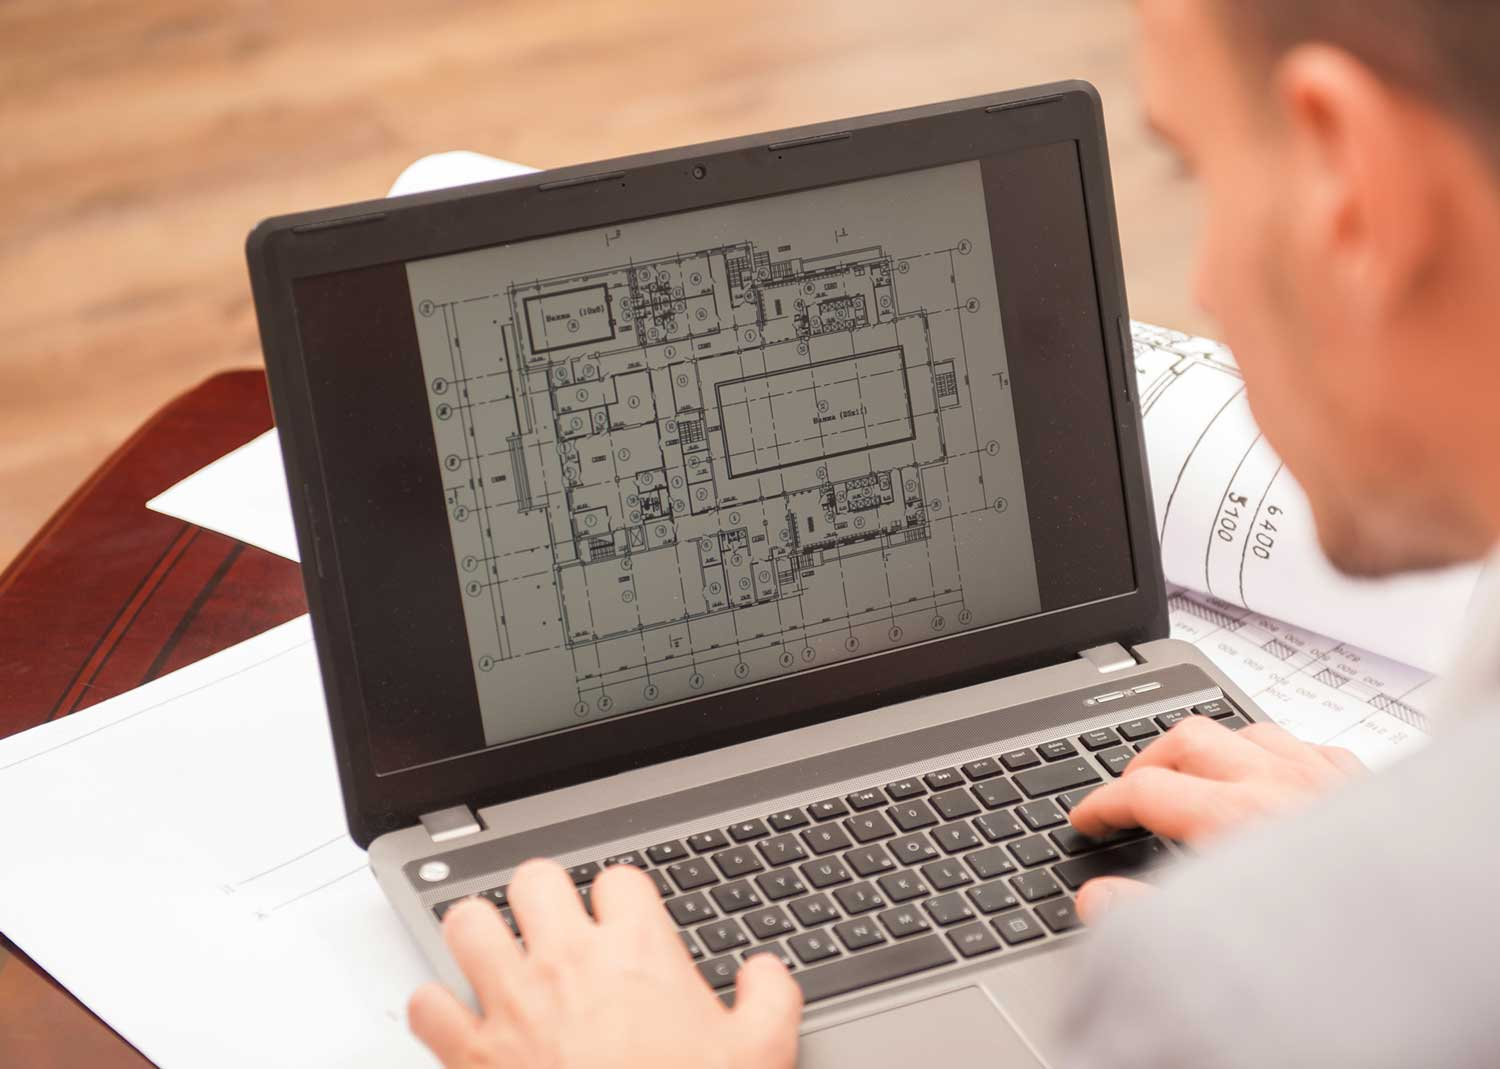 Download 10 Of The Best Free CAD Software | SaveDelete